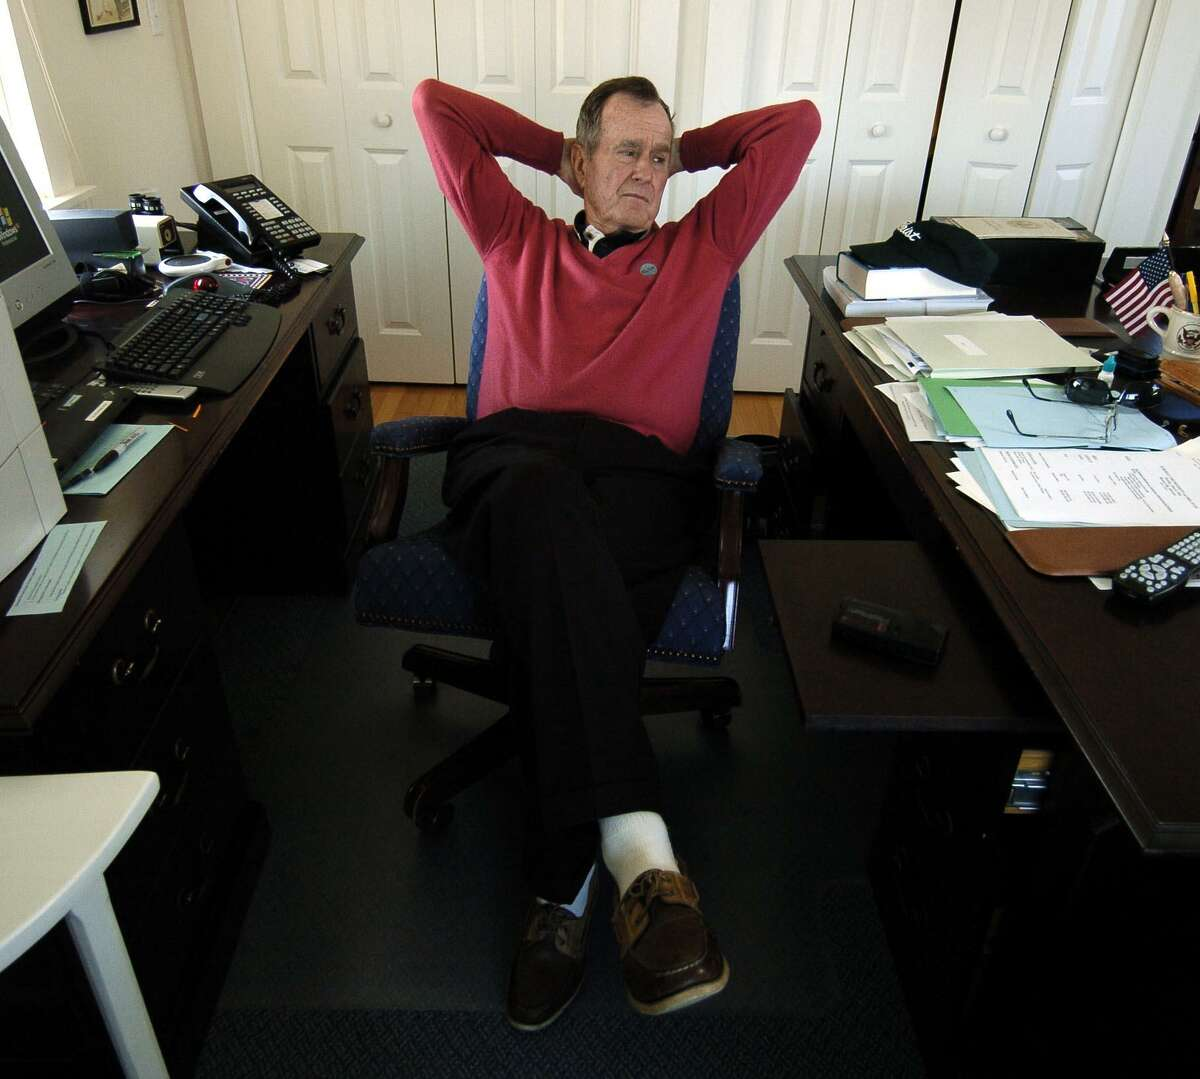 Former U.S. President George Herbert Walker Bush sits in his private office at the Walker Point Estate in Kennebunkport, Maine, in 2004.